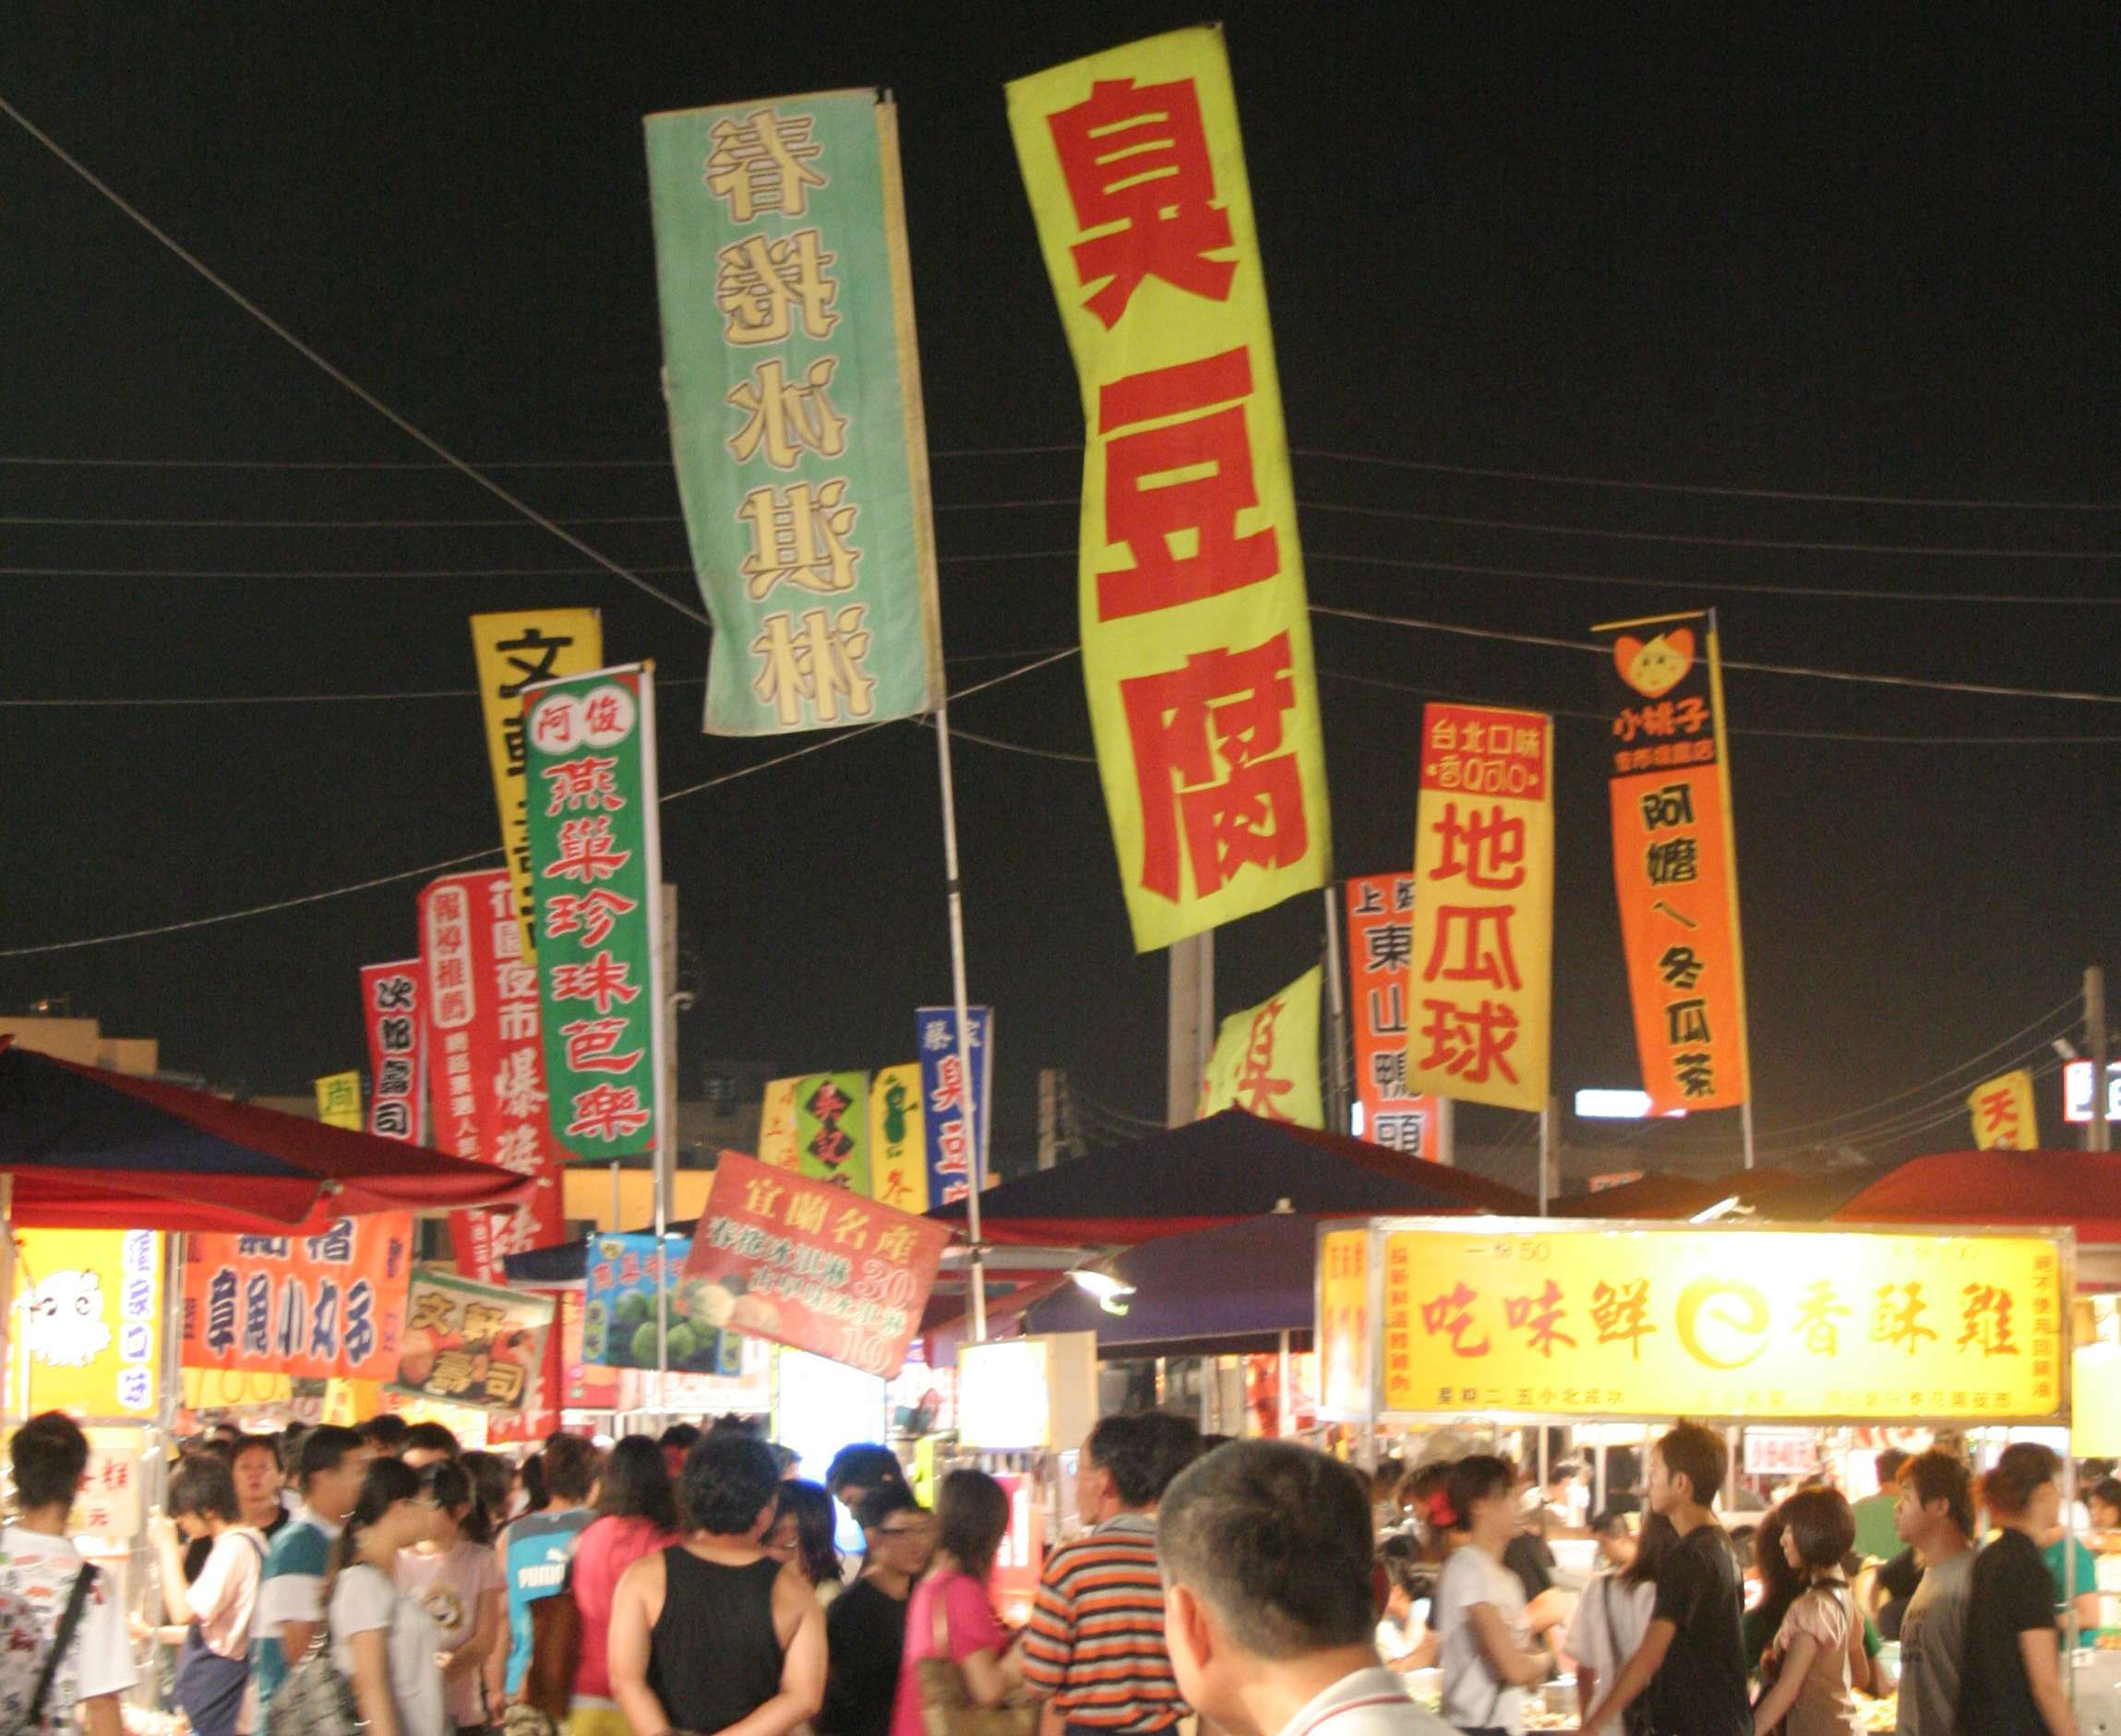 Shoppers flock to Taiwan's biggest outdoor night market